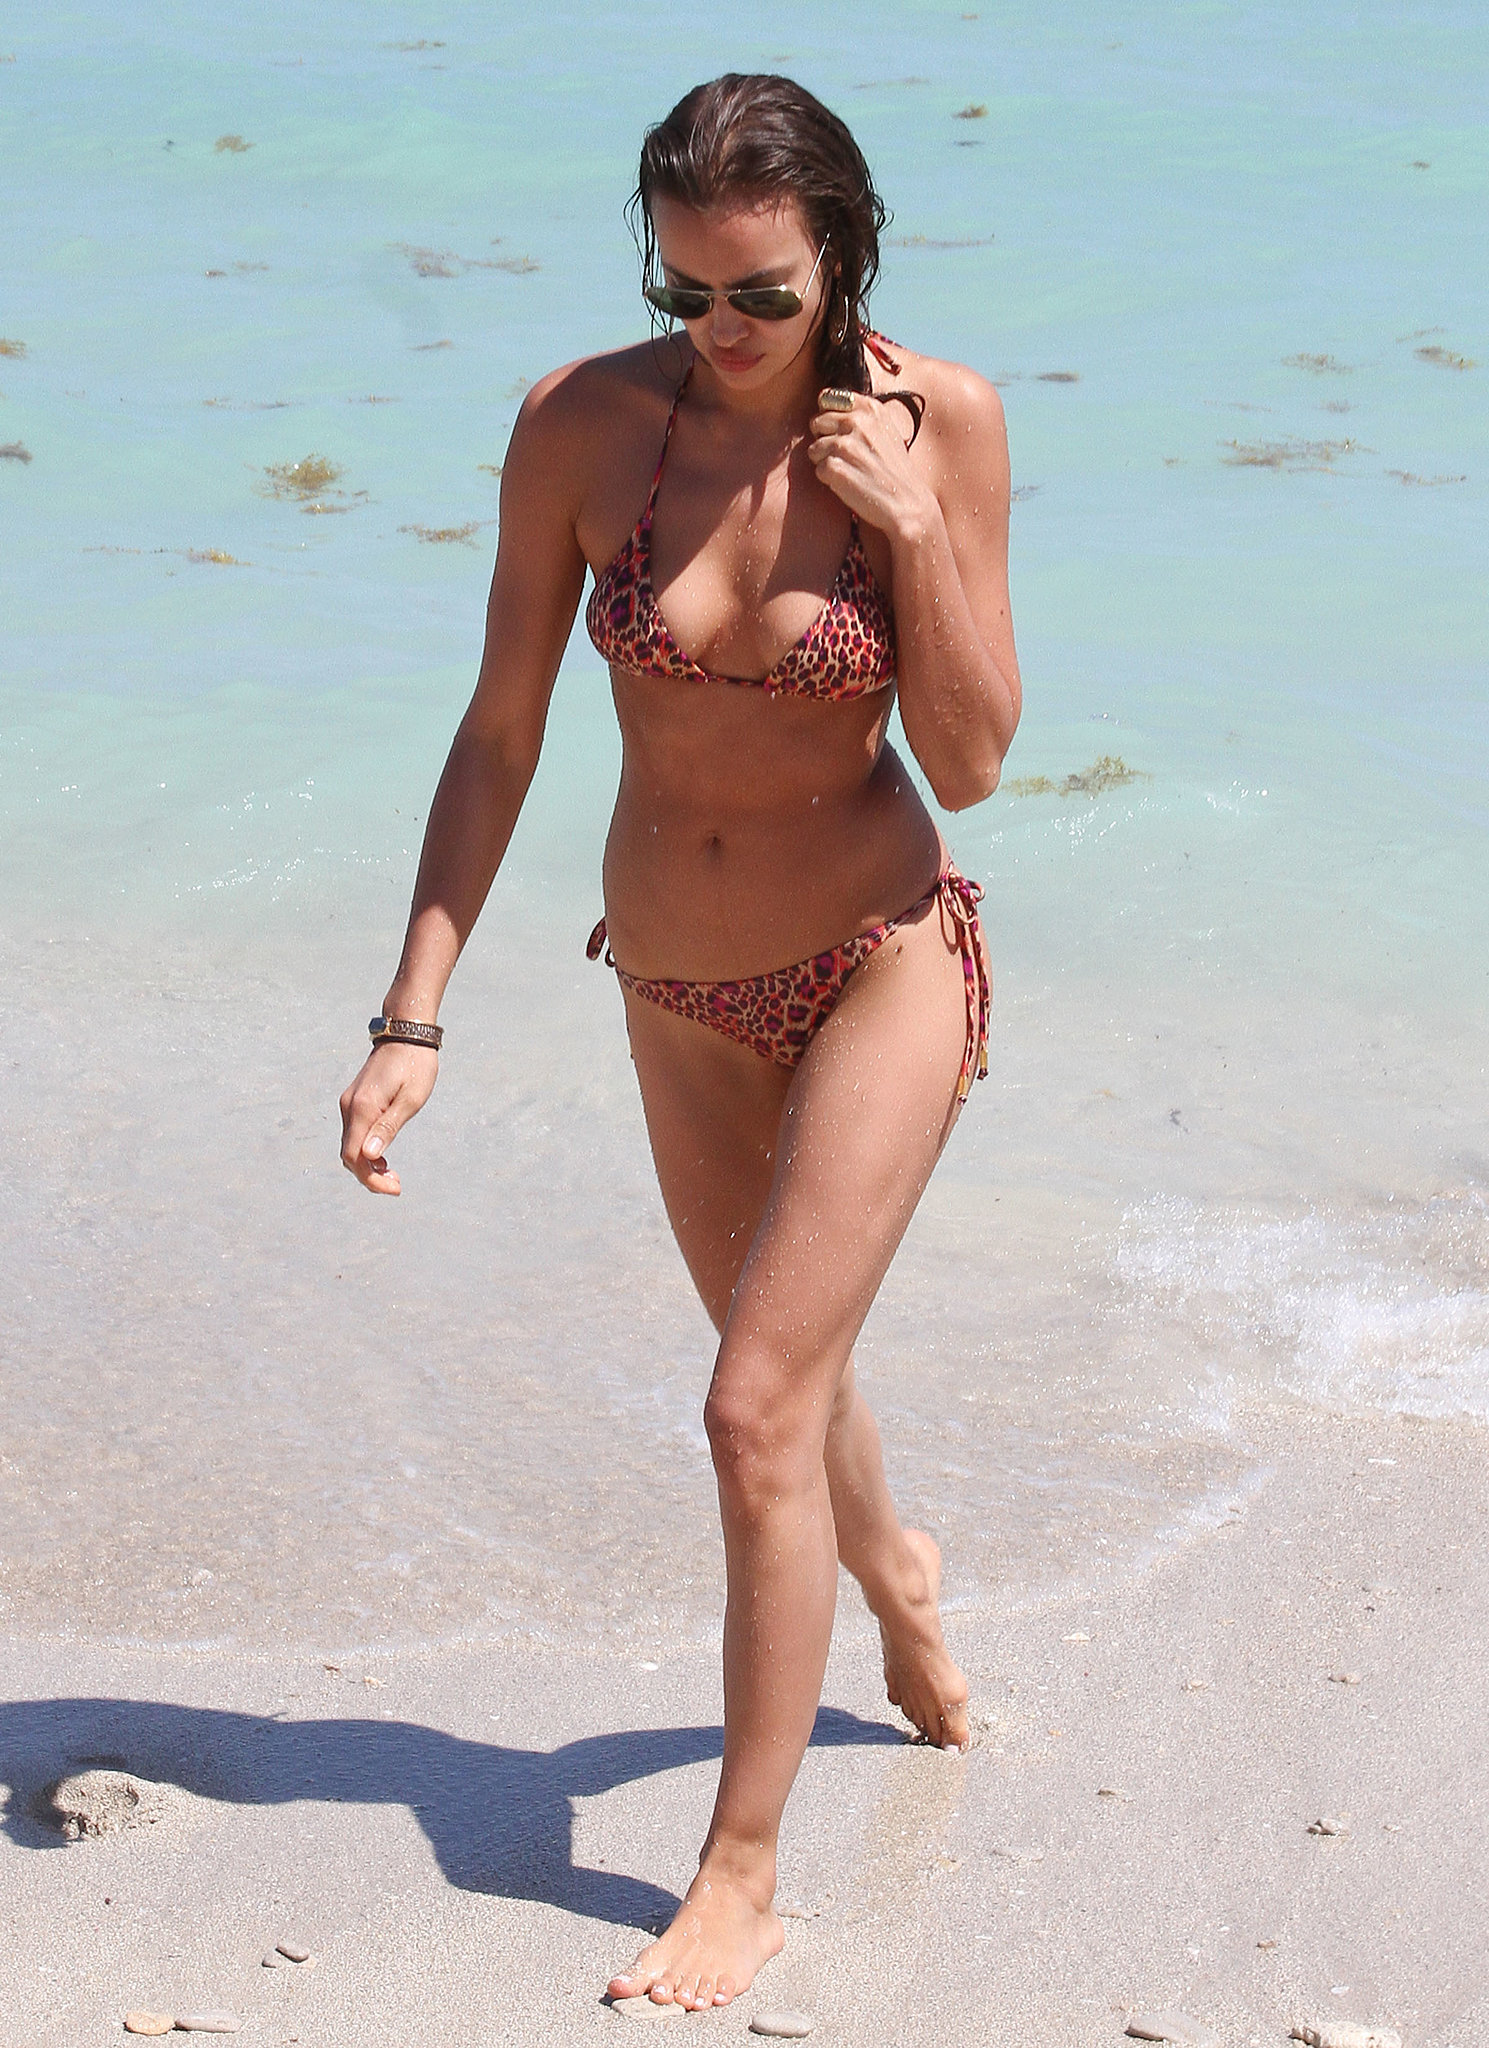 Irina Shayk played in the water during a trip to Miami in March 2012.